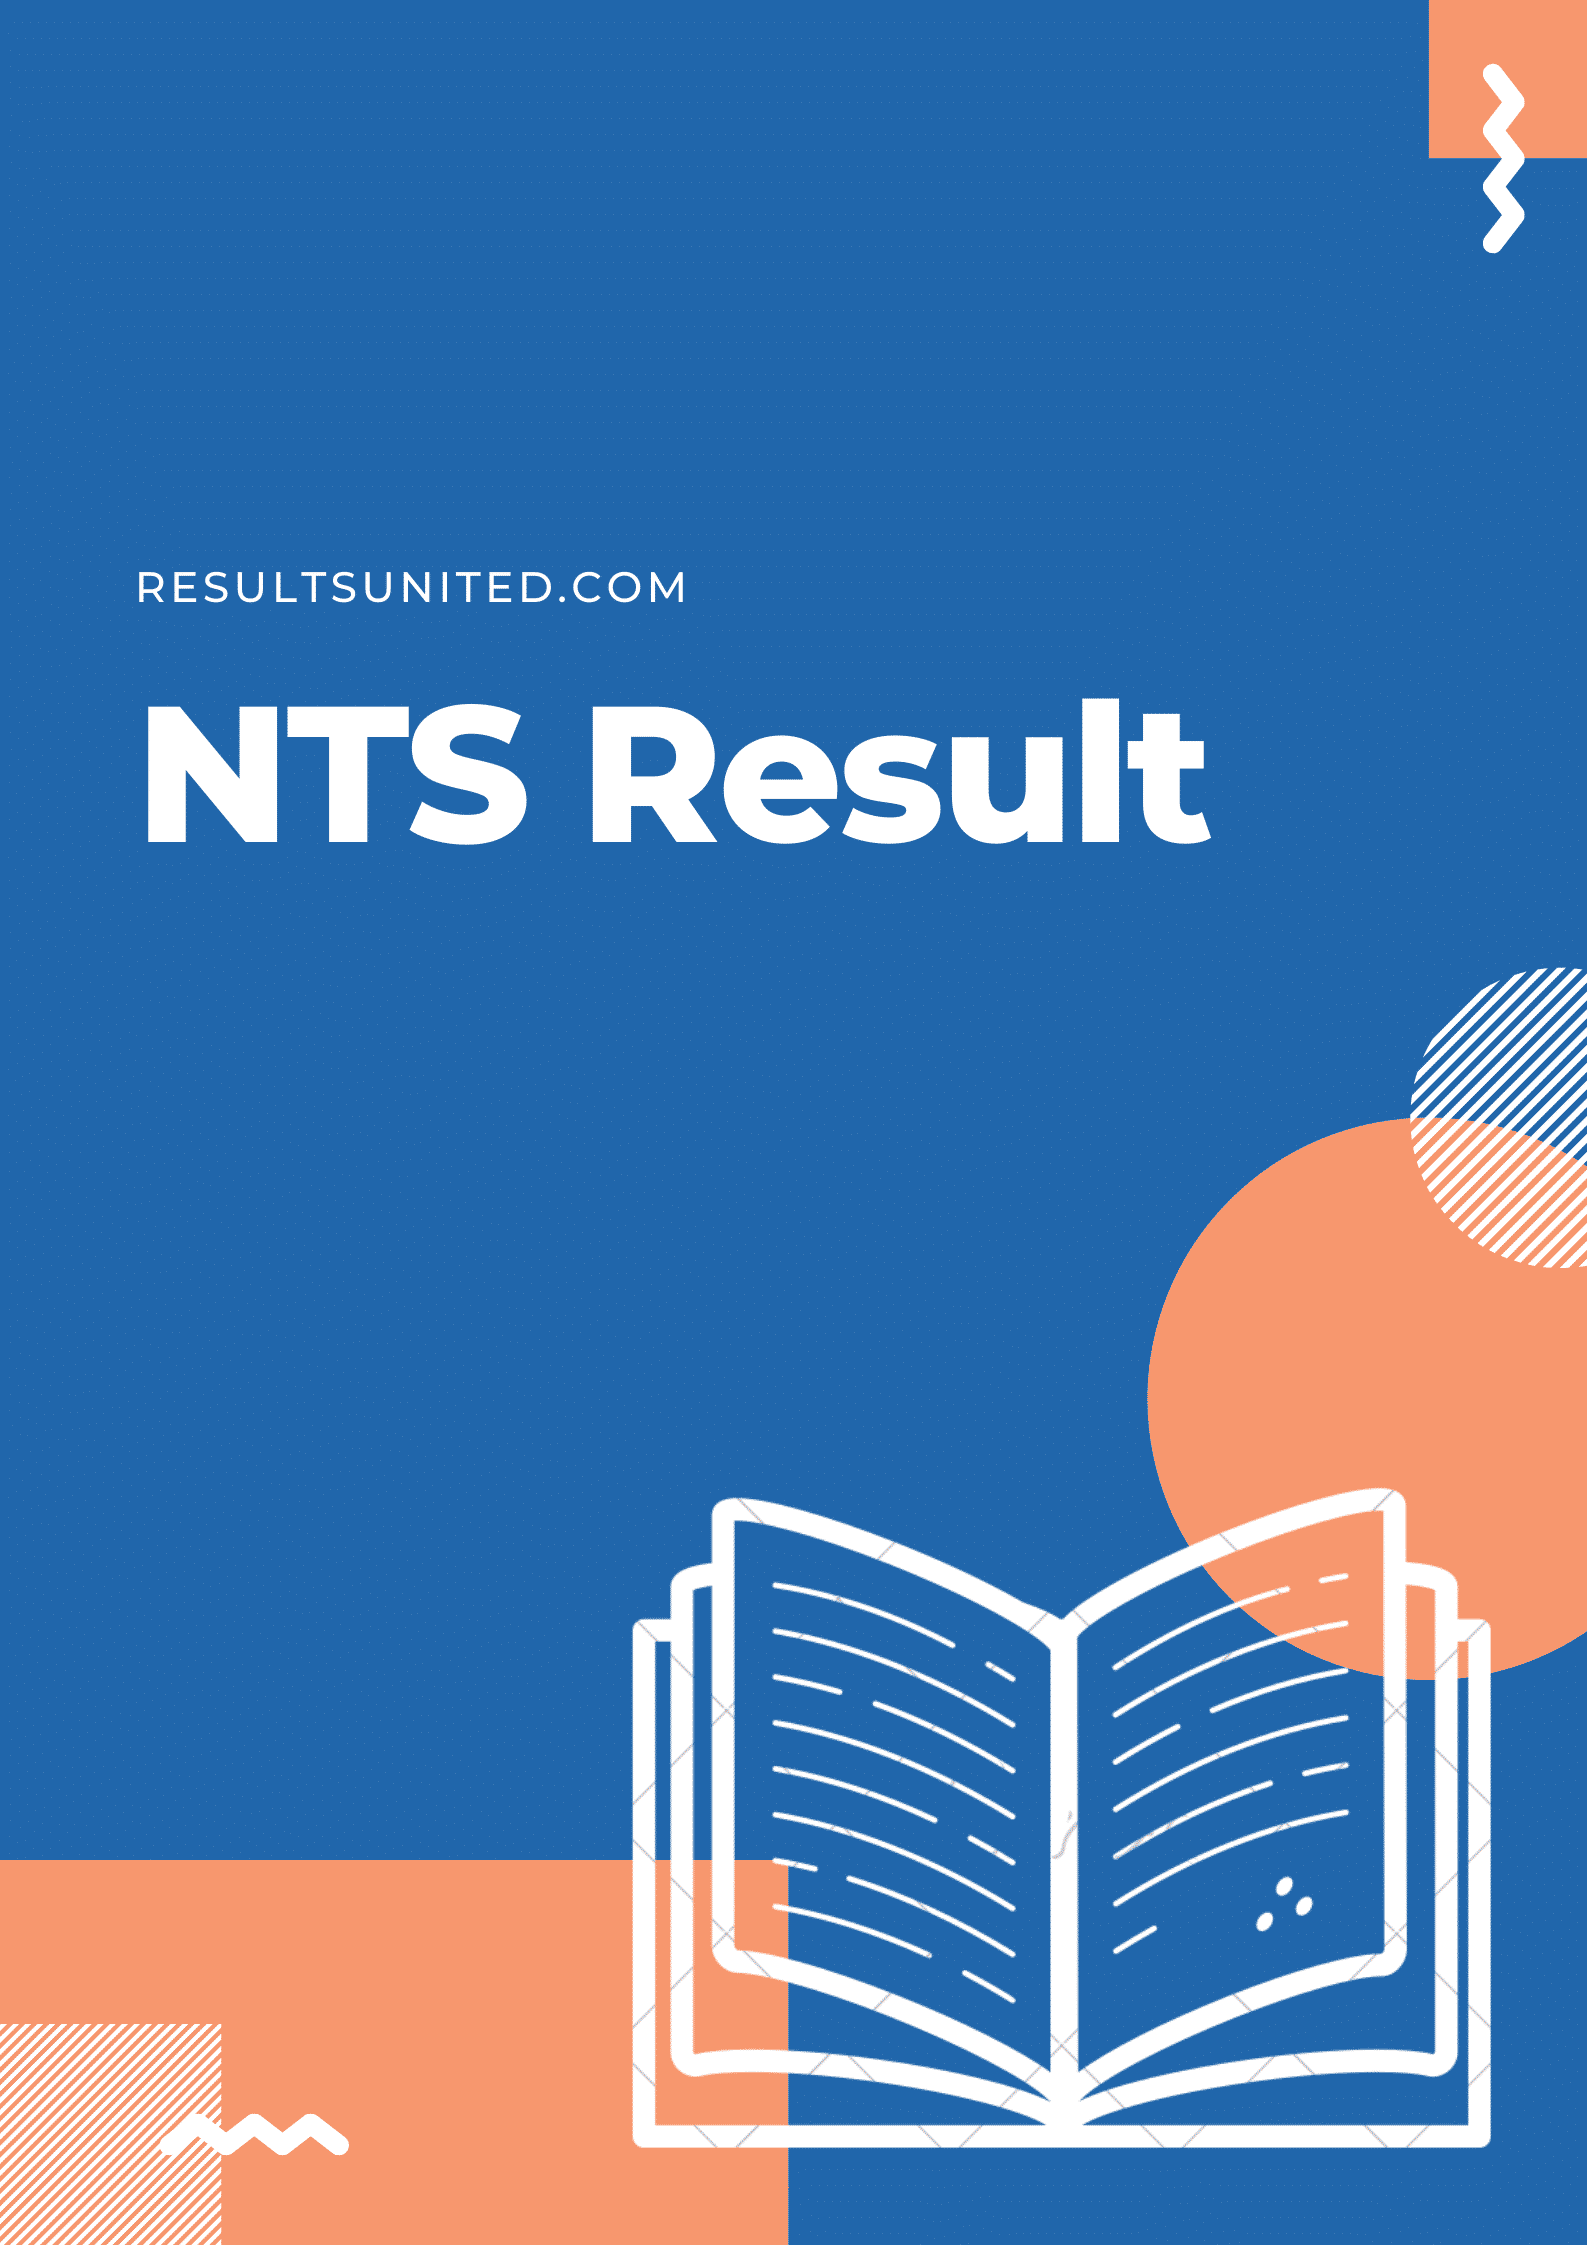 NTS Result